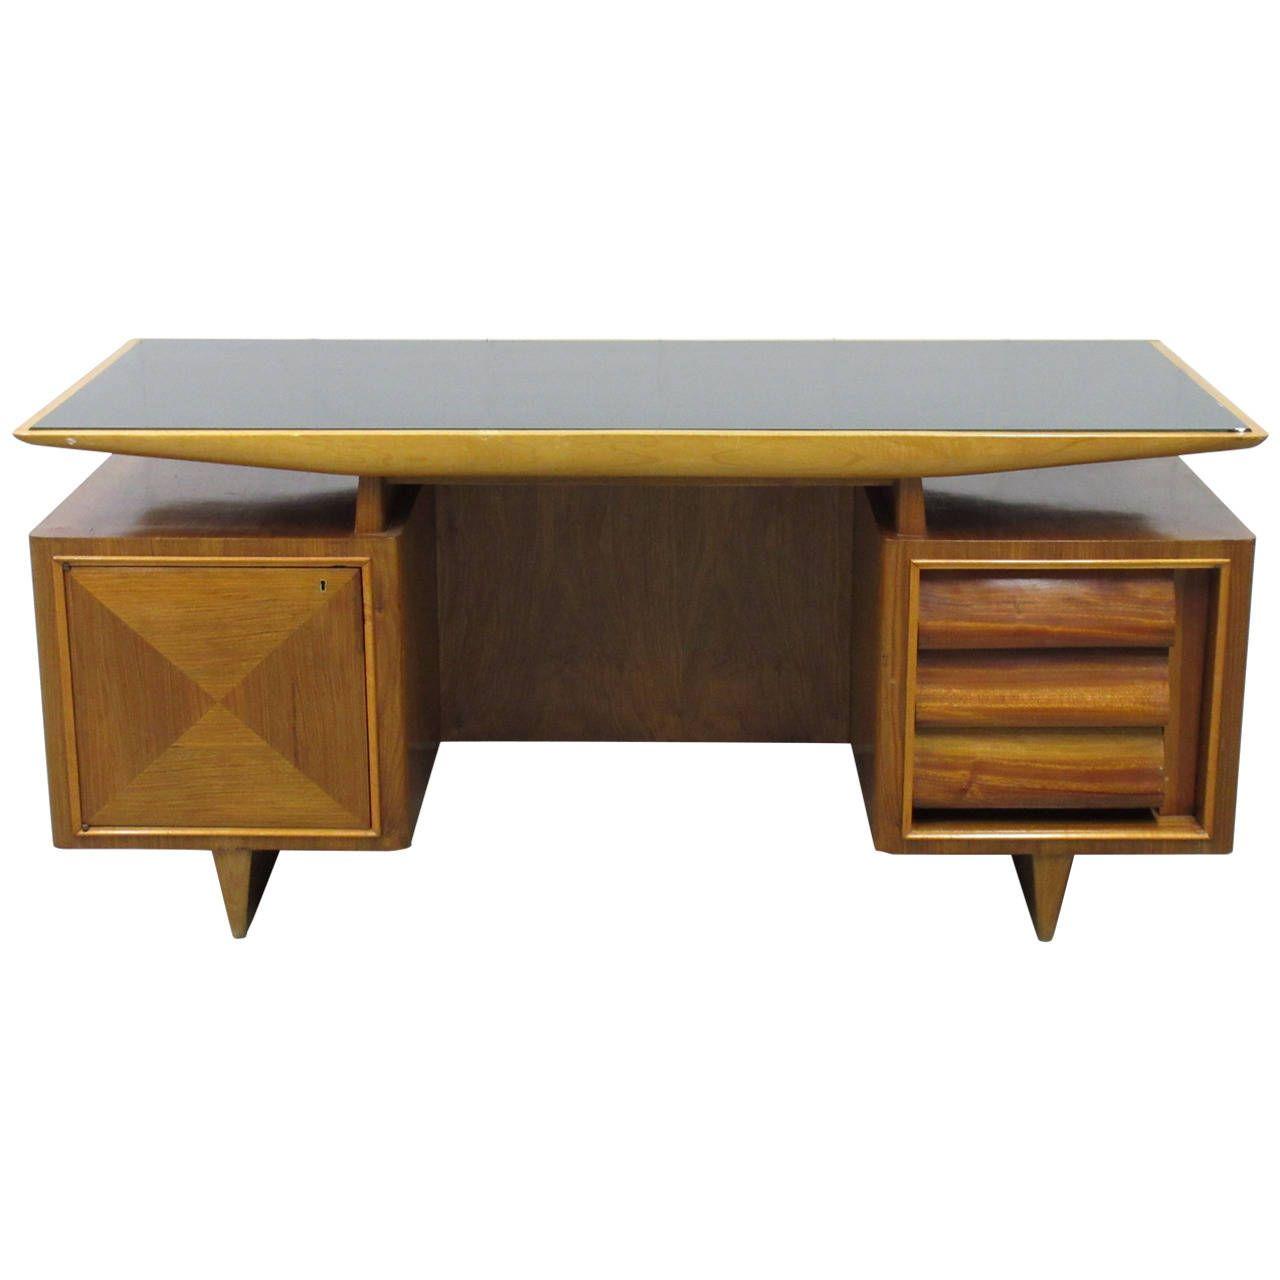 Executive office table with glass top midcentury modern italian executive desk  furniture storage mid